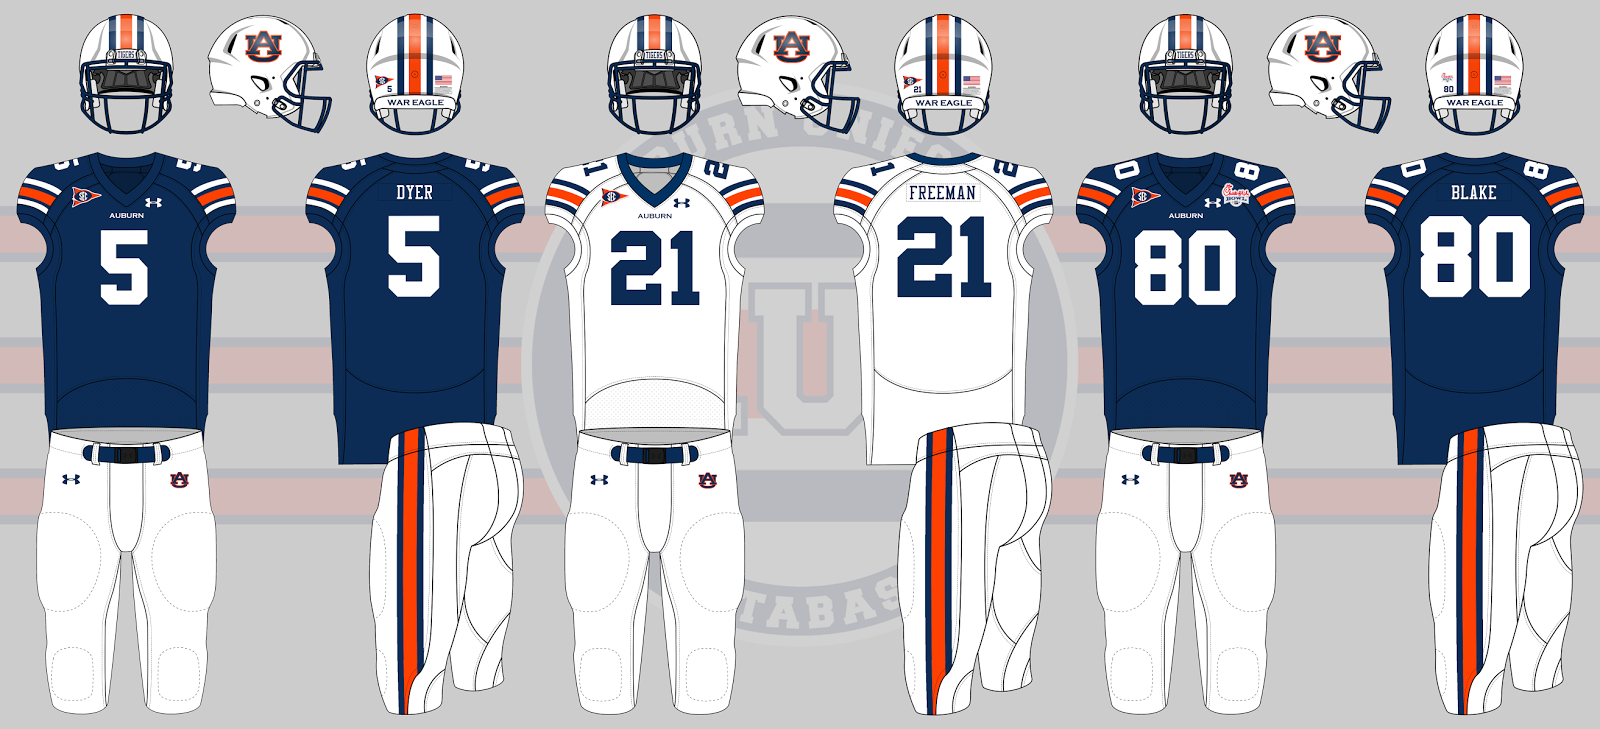 2011 auburn football uniforms chick fil a bowl 866999115